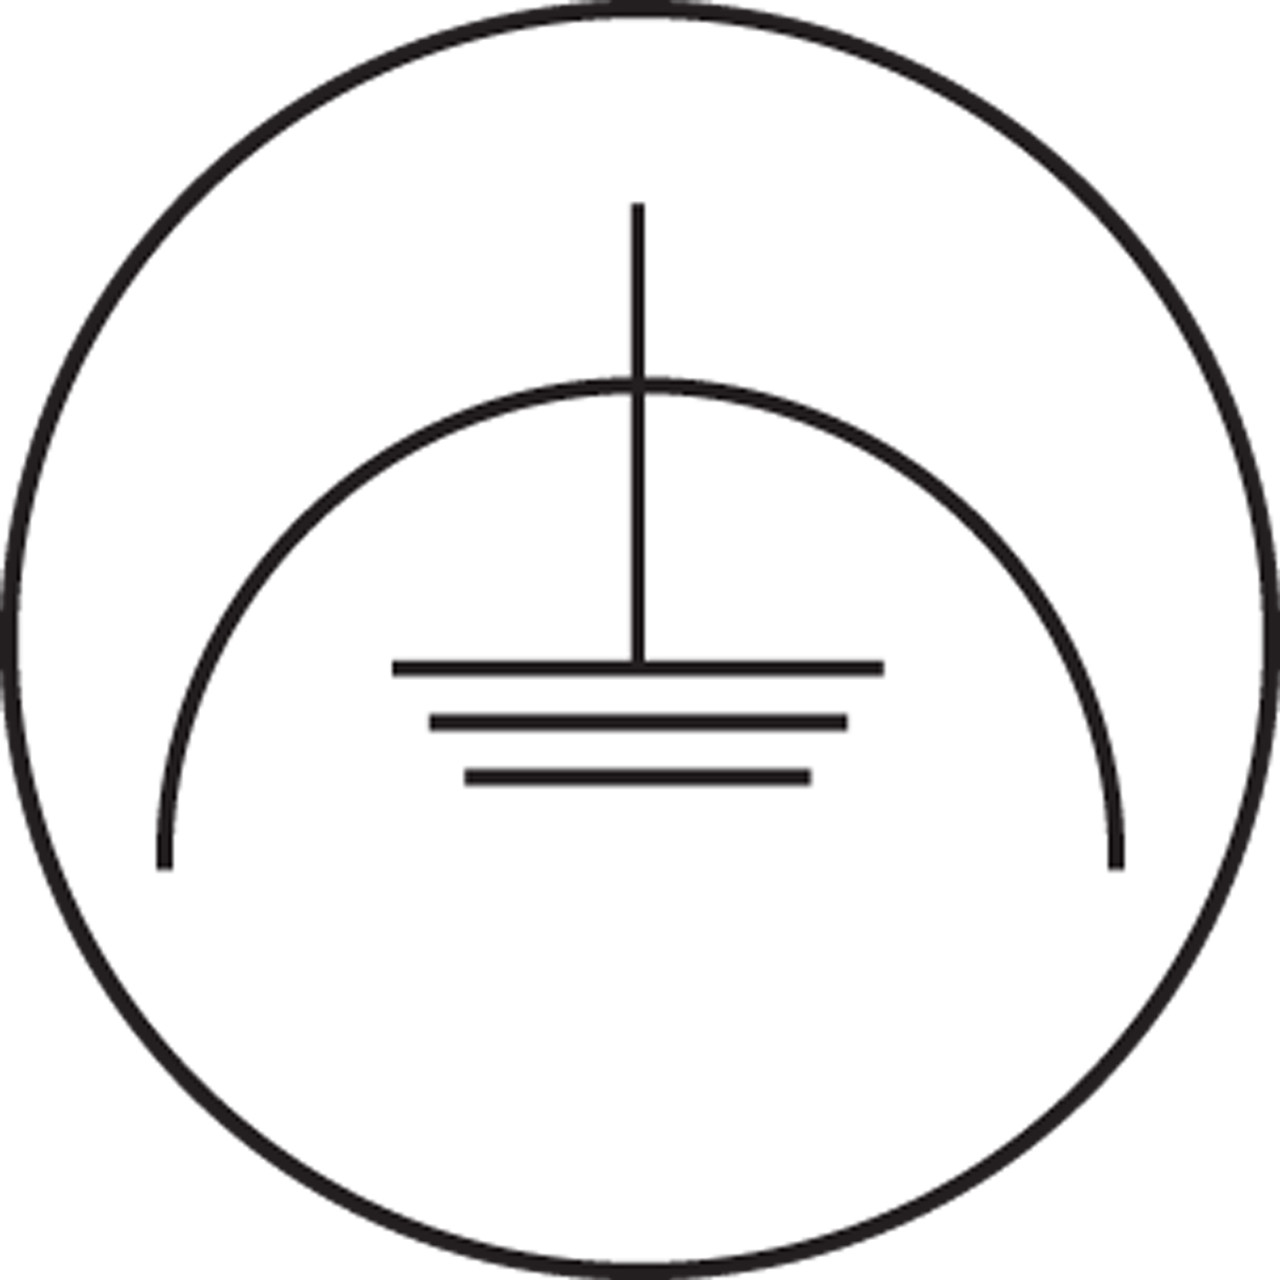 Contactor Schematic Symbol In Addition Iec Standard Electrical Symbols